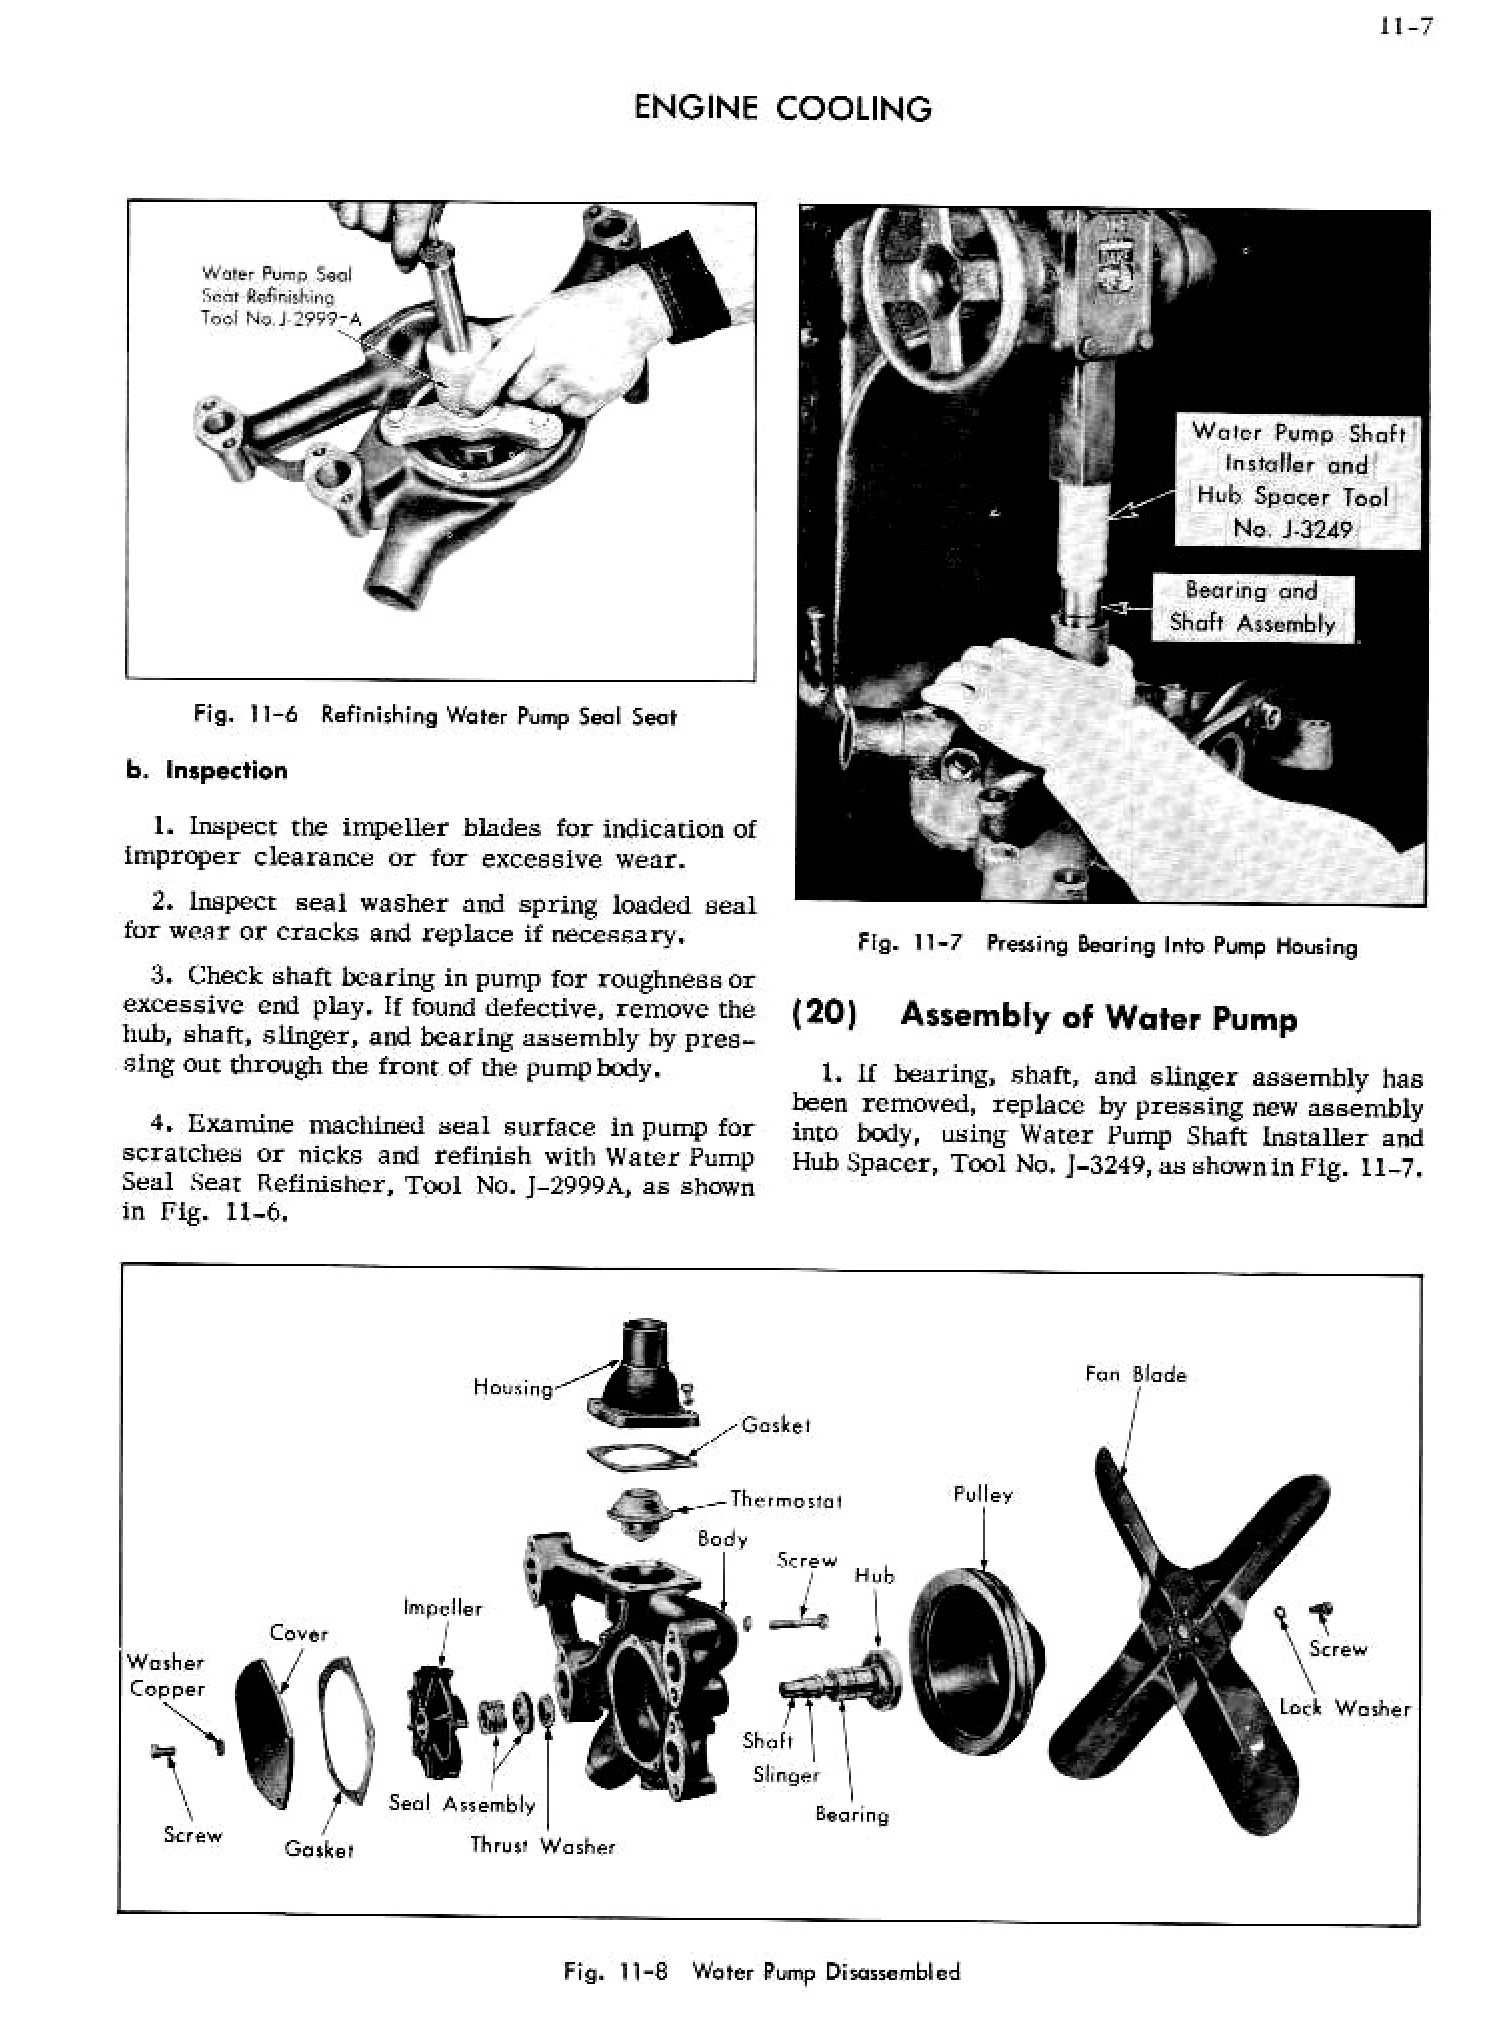 1956 Cadillac Shop Manual- Engine Cooling Page 7 of 9